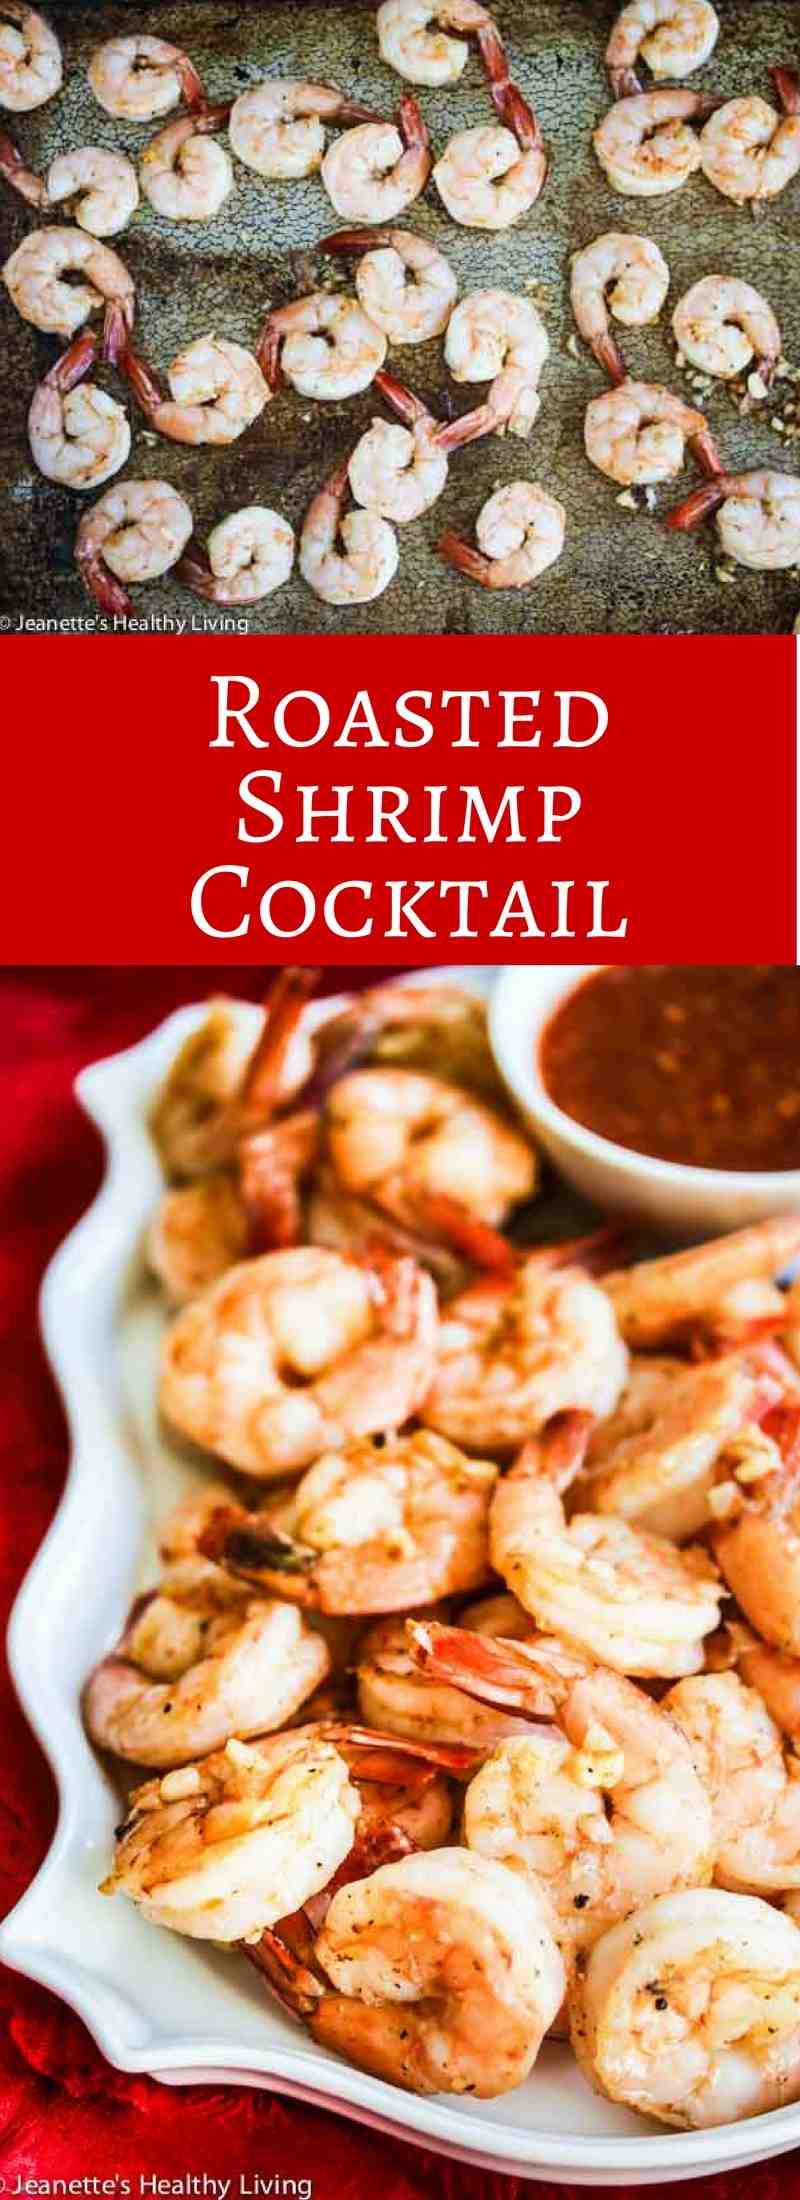 Roasted Garlic Shrimp Cocktail -Much more flavorful than regular shrimp cocktail and easy to make in large batches.